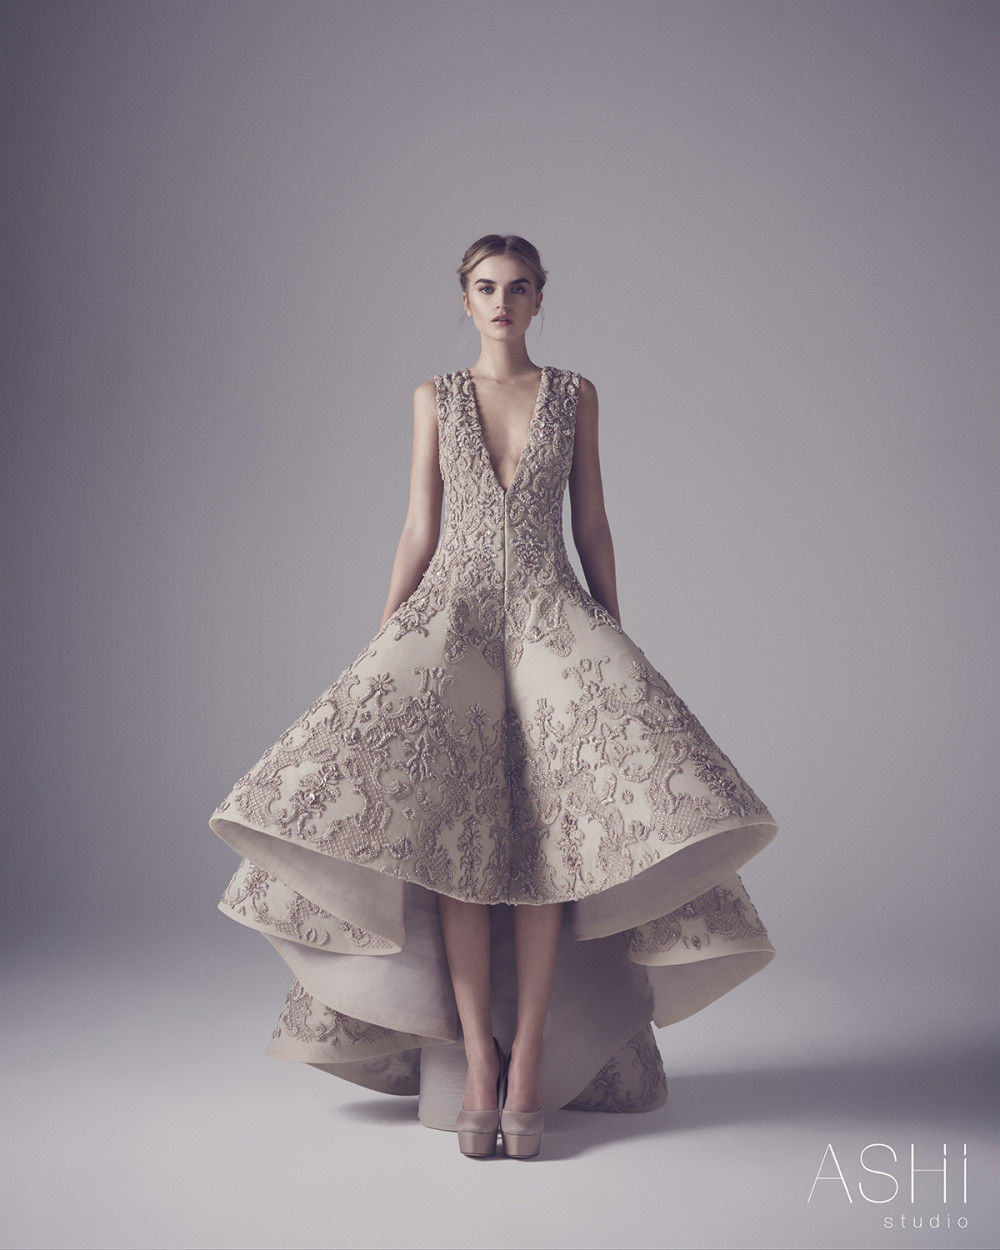 Bn bridal ashi studio spring summer couture collection 2016 for Designer haute couture dresses